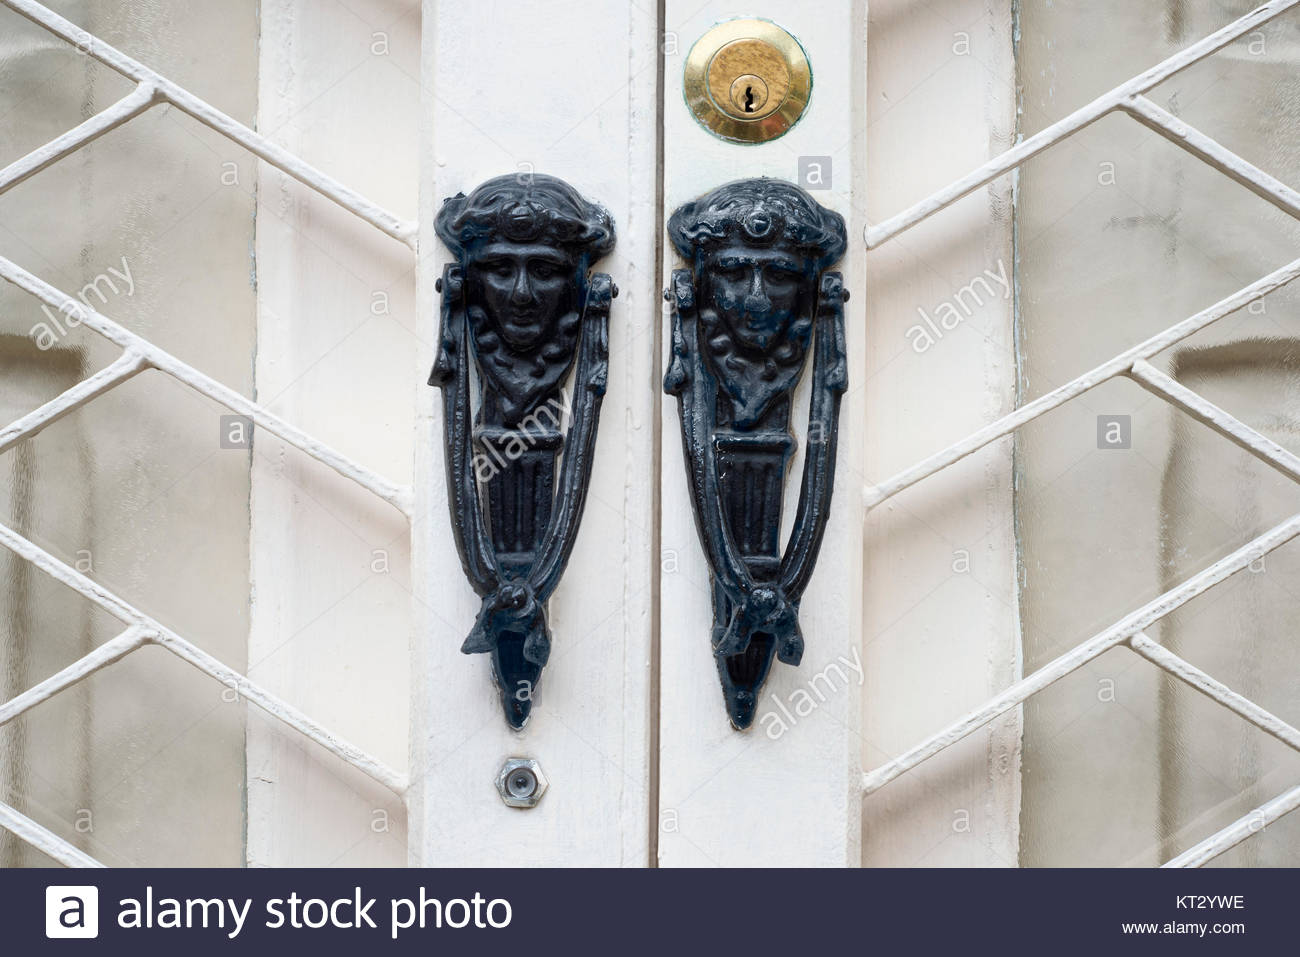 Antique knocker on a vintage wooden white door. Architecture in St. Julian, Malta. - Stock Image